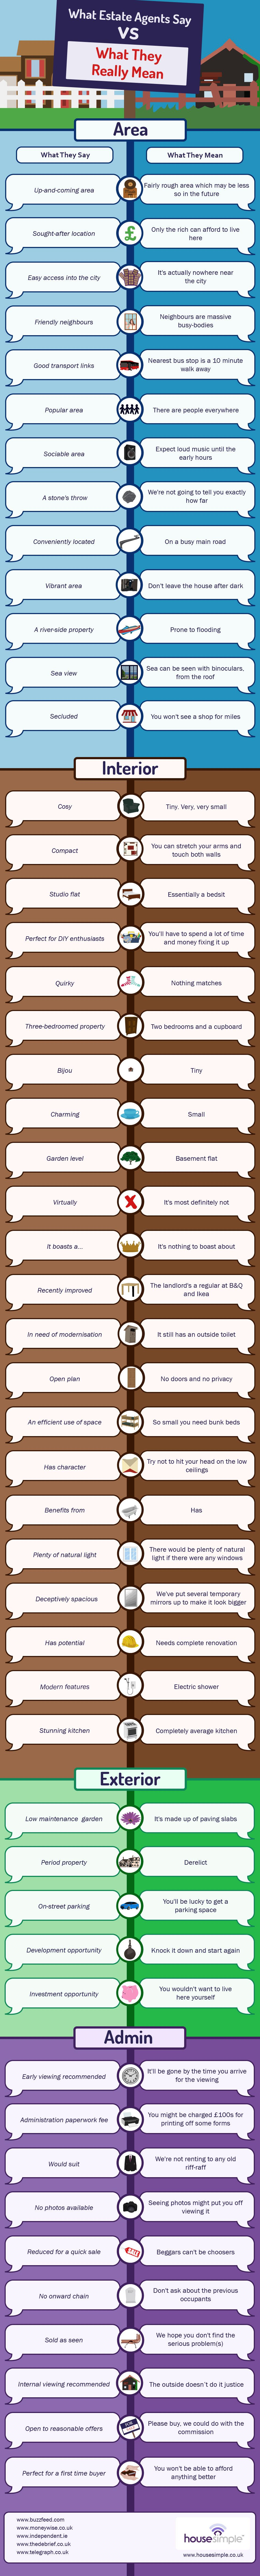 What Estate Agents Say vs What They Really Mean #infographic